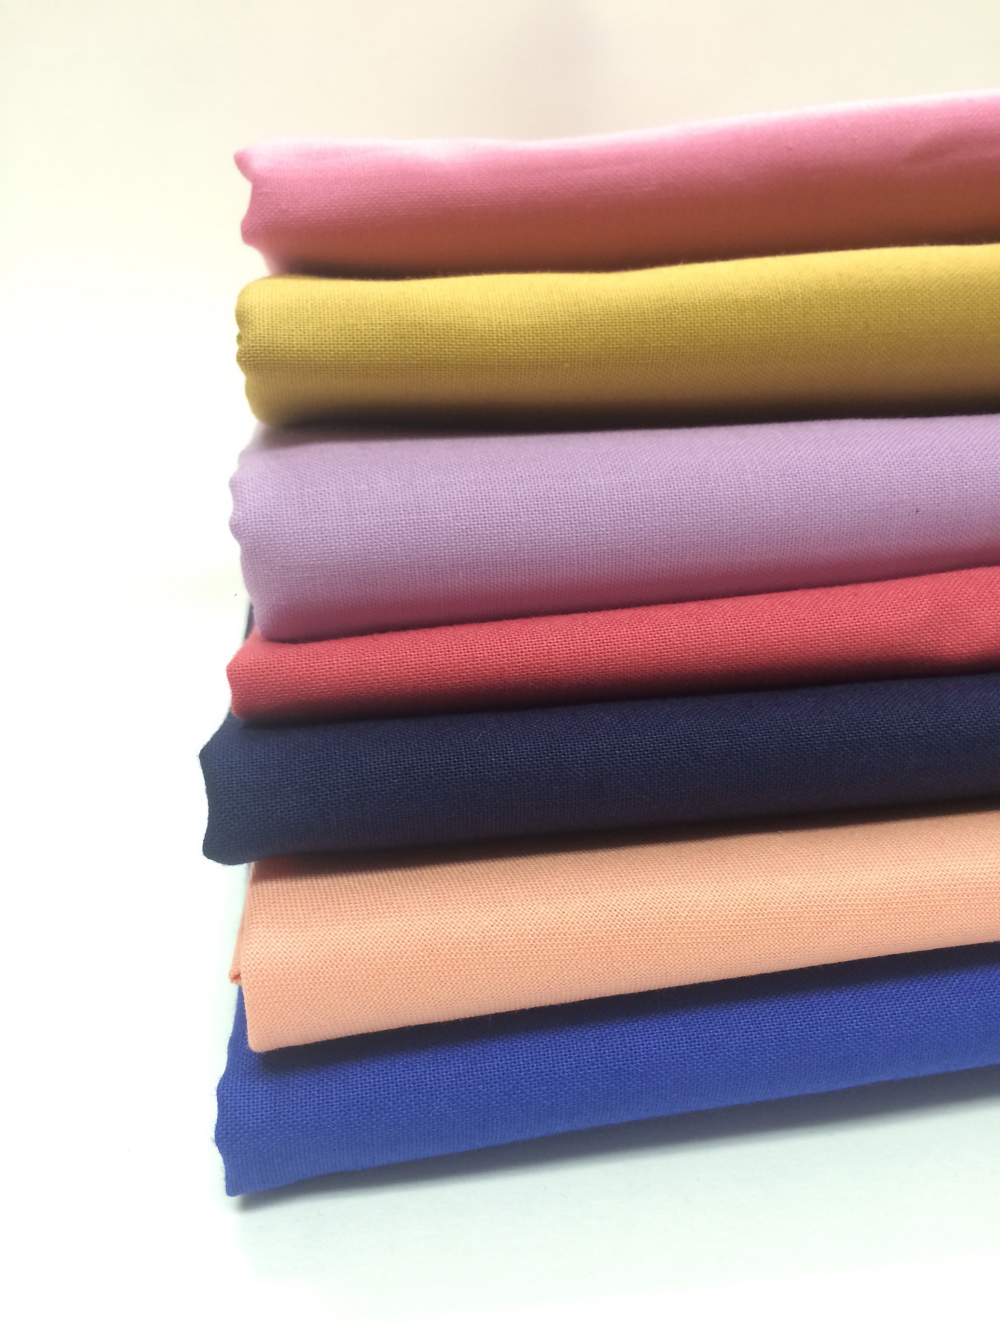 Fabric Colors: Flamingo 338, Night 280, Hot Pink 217, Electric Blue 296, Rio 311, Marvelous 332, and Golden 285